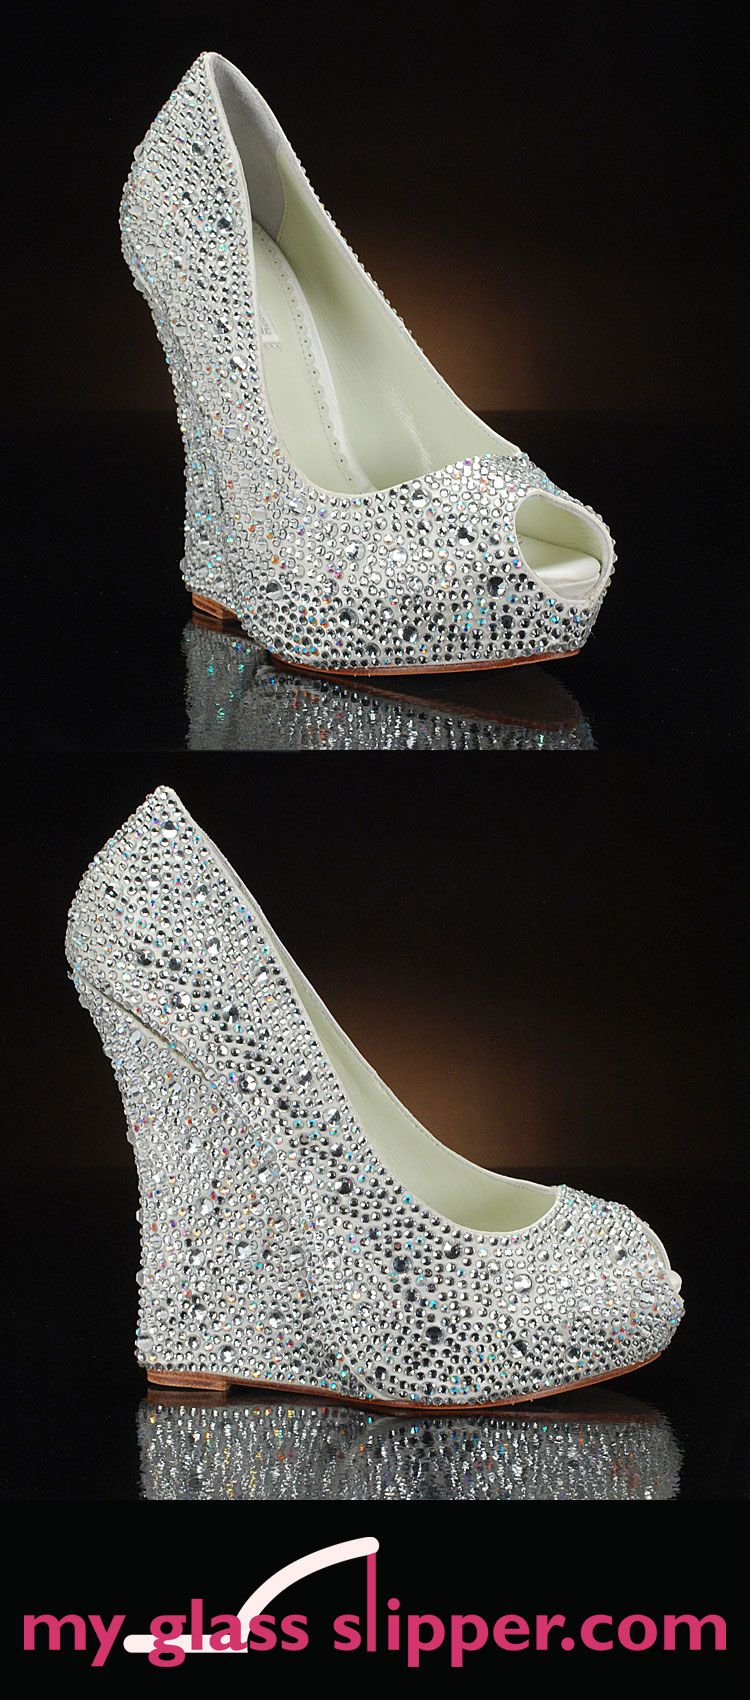 336e0932f093fa MILA by BENJAMIN ADAMS  Comfortable wedge wedding shoes with serious sparkle!  These sparkly wedding